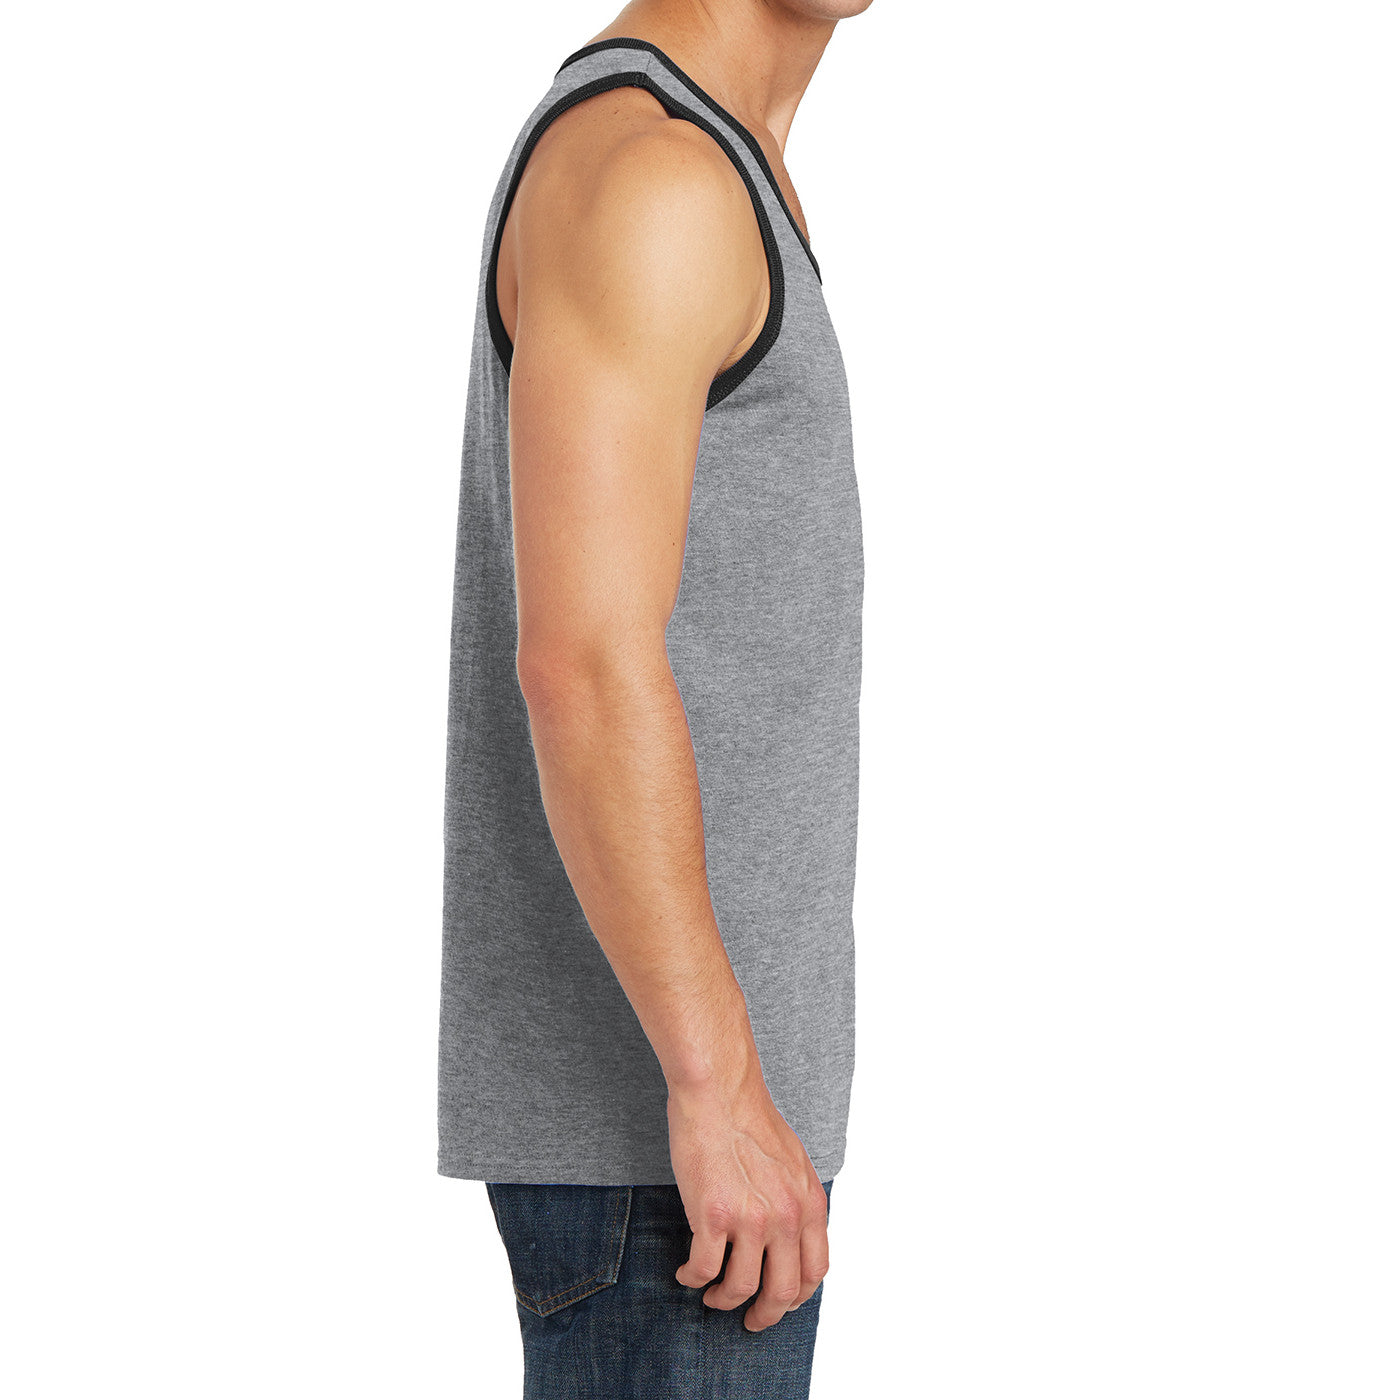 Men's Core Cotton Tank Top - Athletic Heather/ Jet Black - Side